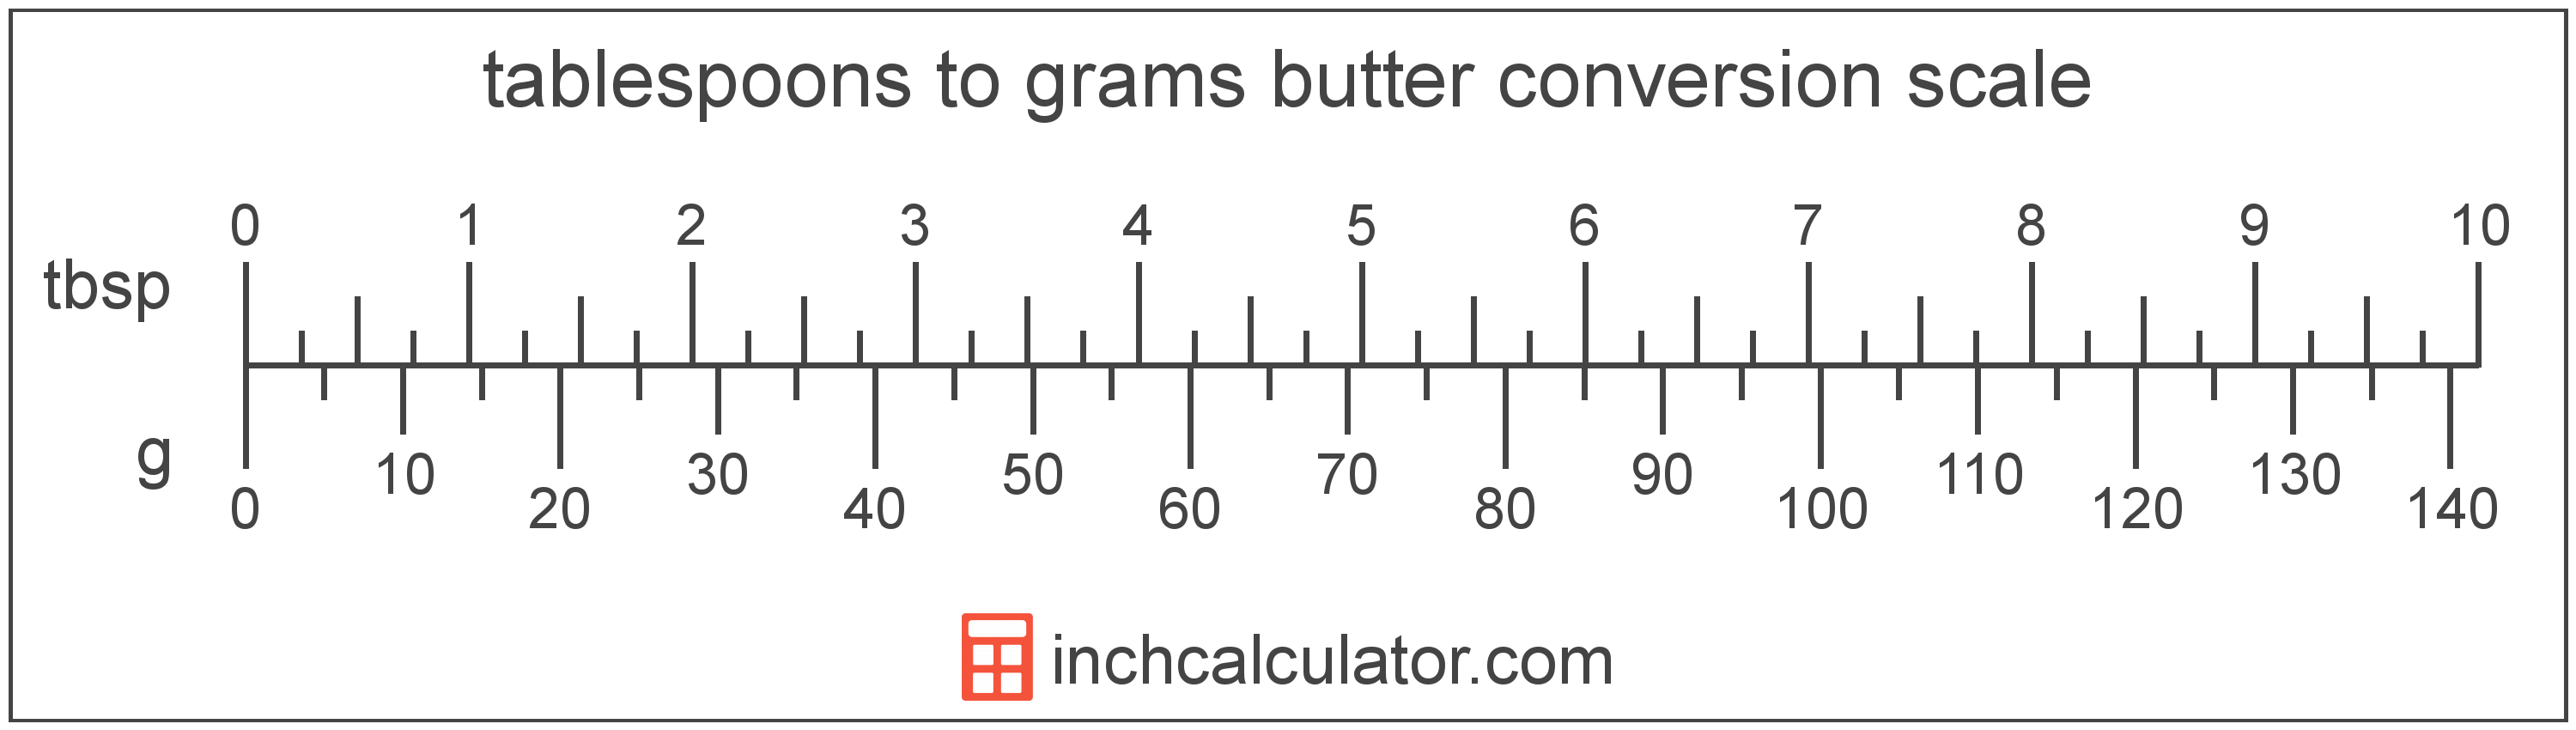 conversion scale showing tablespoons and equivalent grams butter values